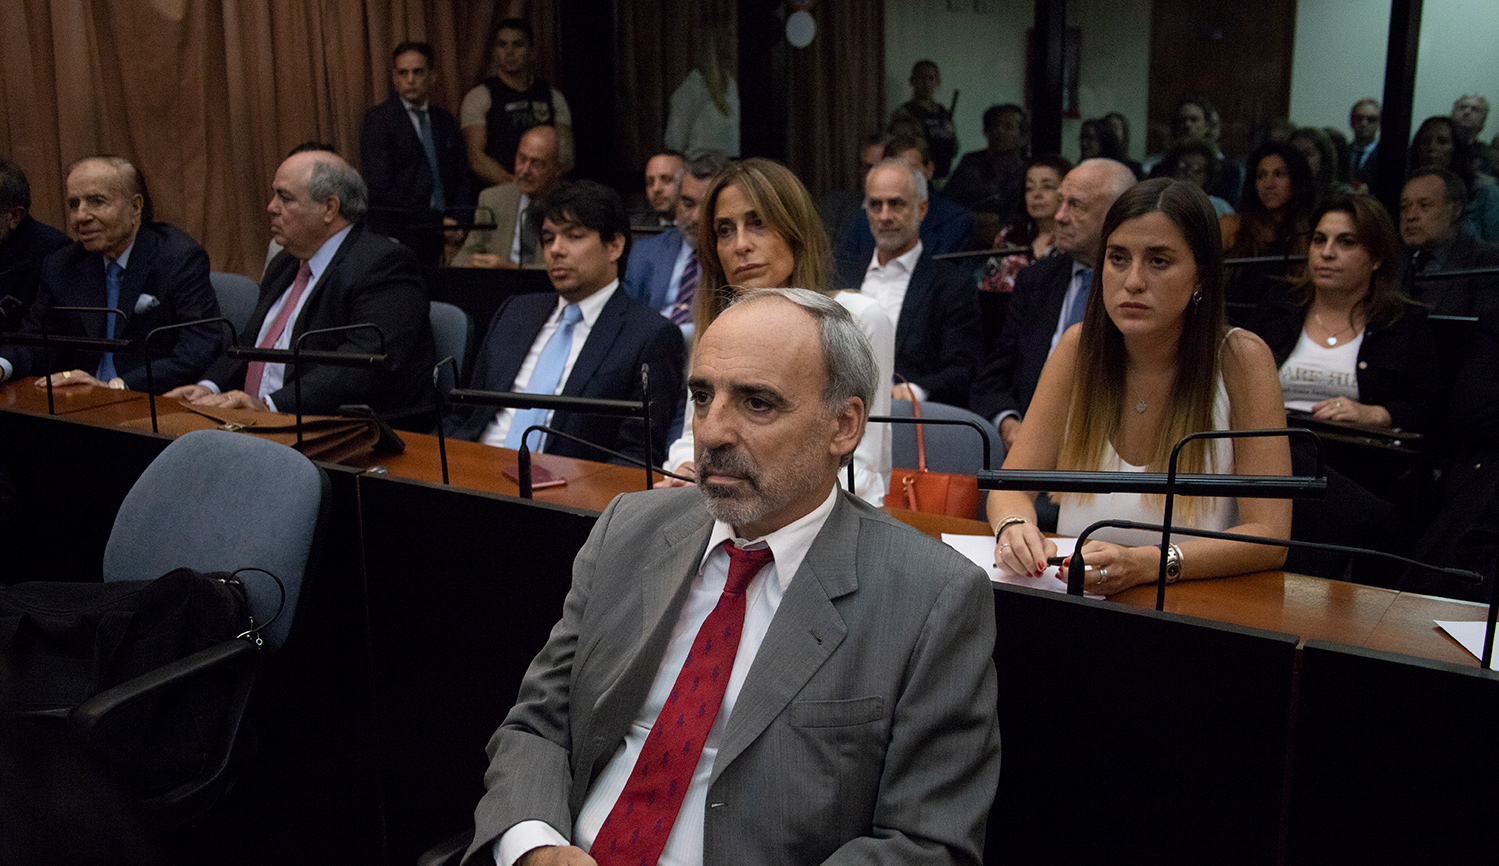 Former magistrate JuanJoséGaleano attends as defendant on August 16, 2015: the first day of hearings into the 1994 AMIA bombing in Buenos Aires. Matías Baglietto/NurPhoto via Getty Images.